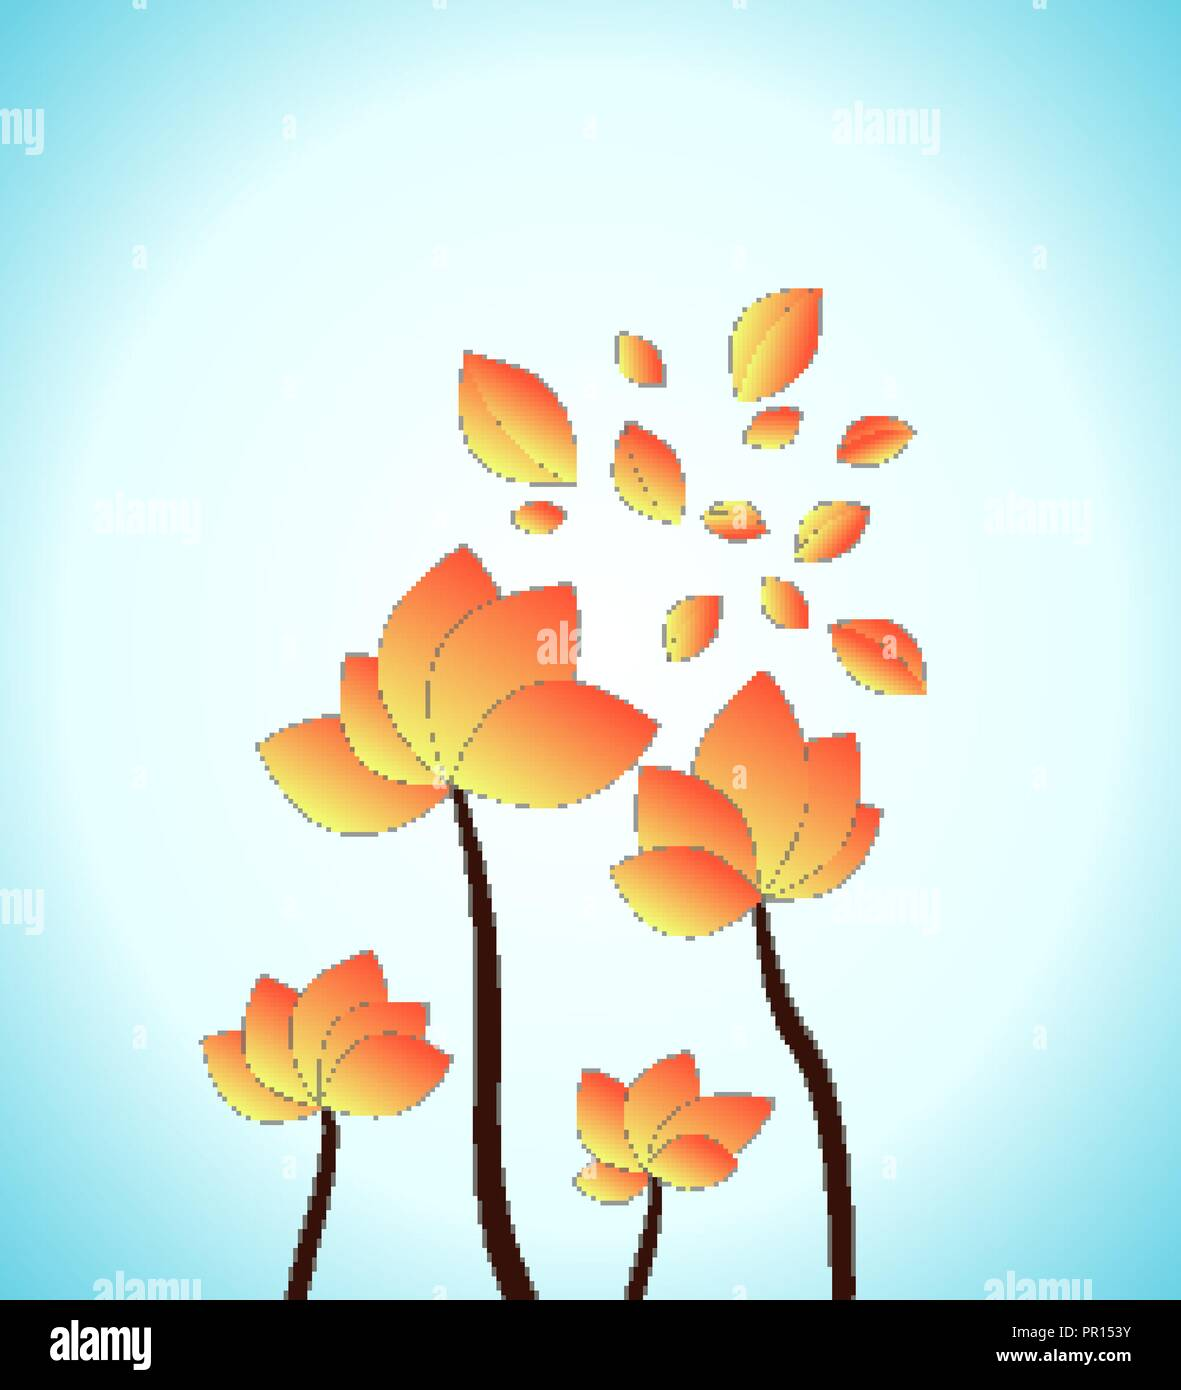 Flower Concept Map.3d Papercut Layers In Gradient Vector Banner Artistic Floral Design